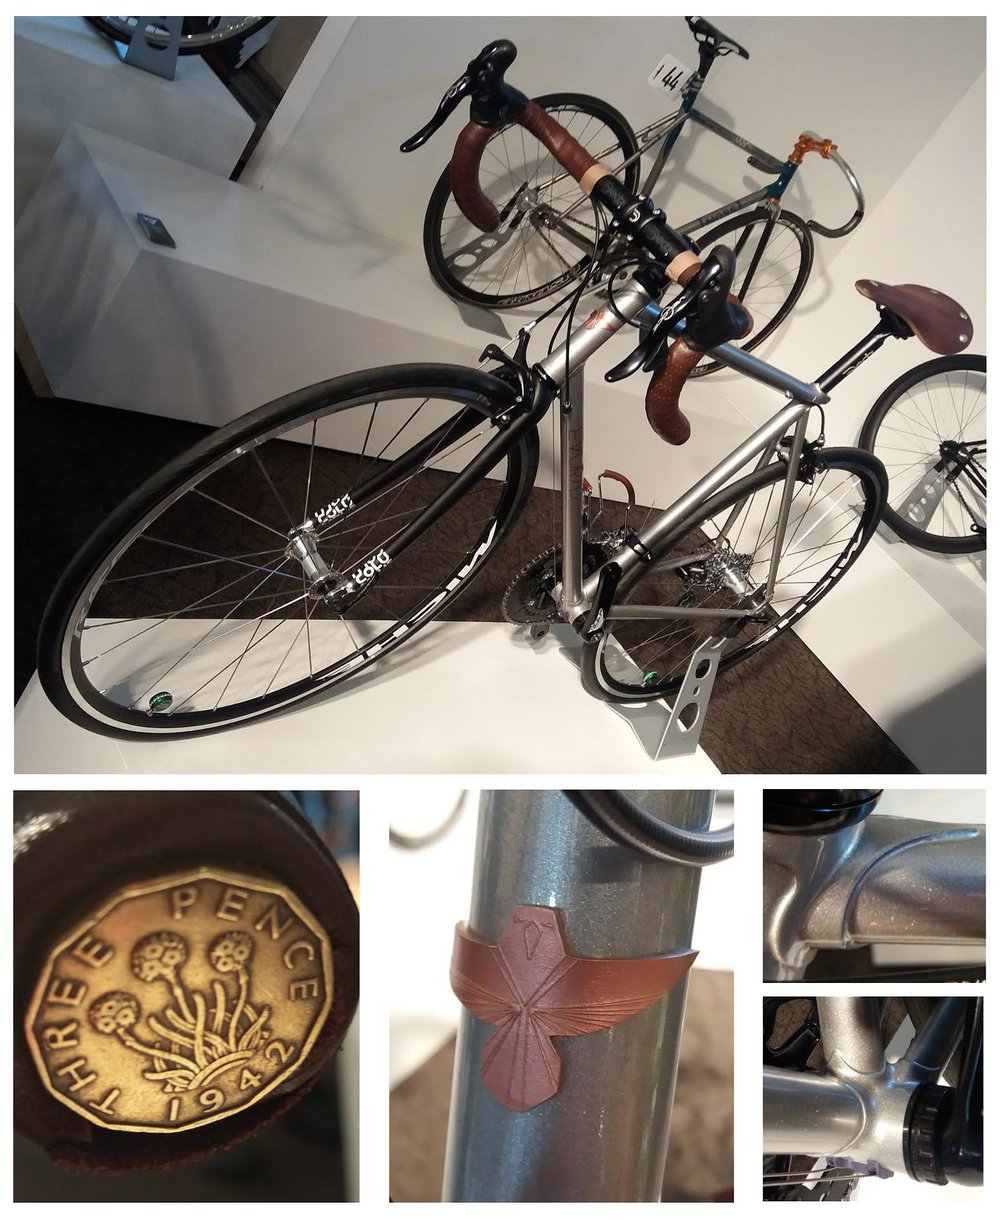 Henry Foxall's finely crafted bike